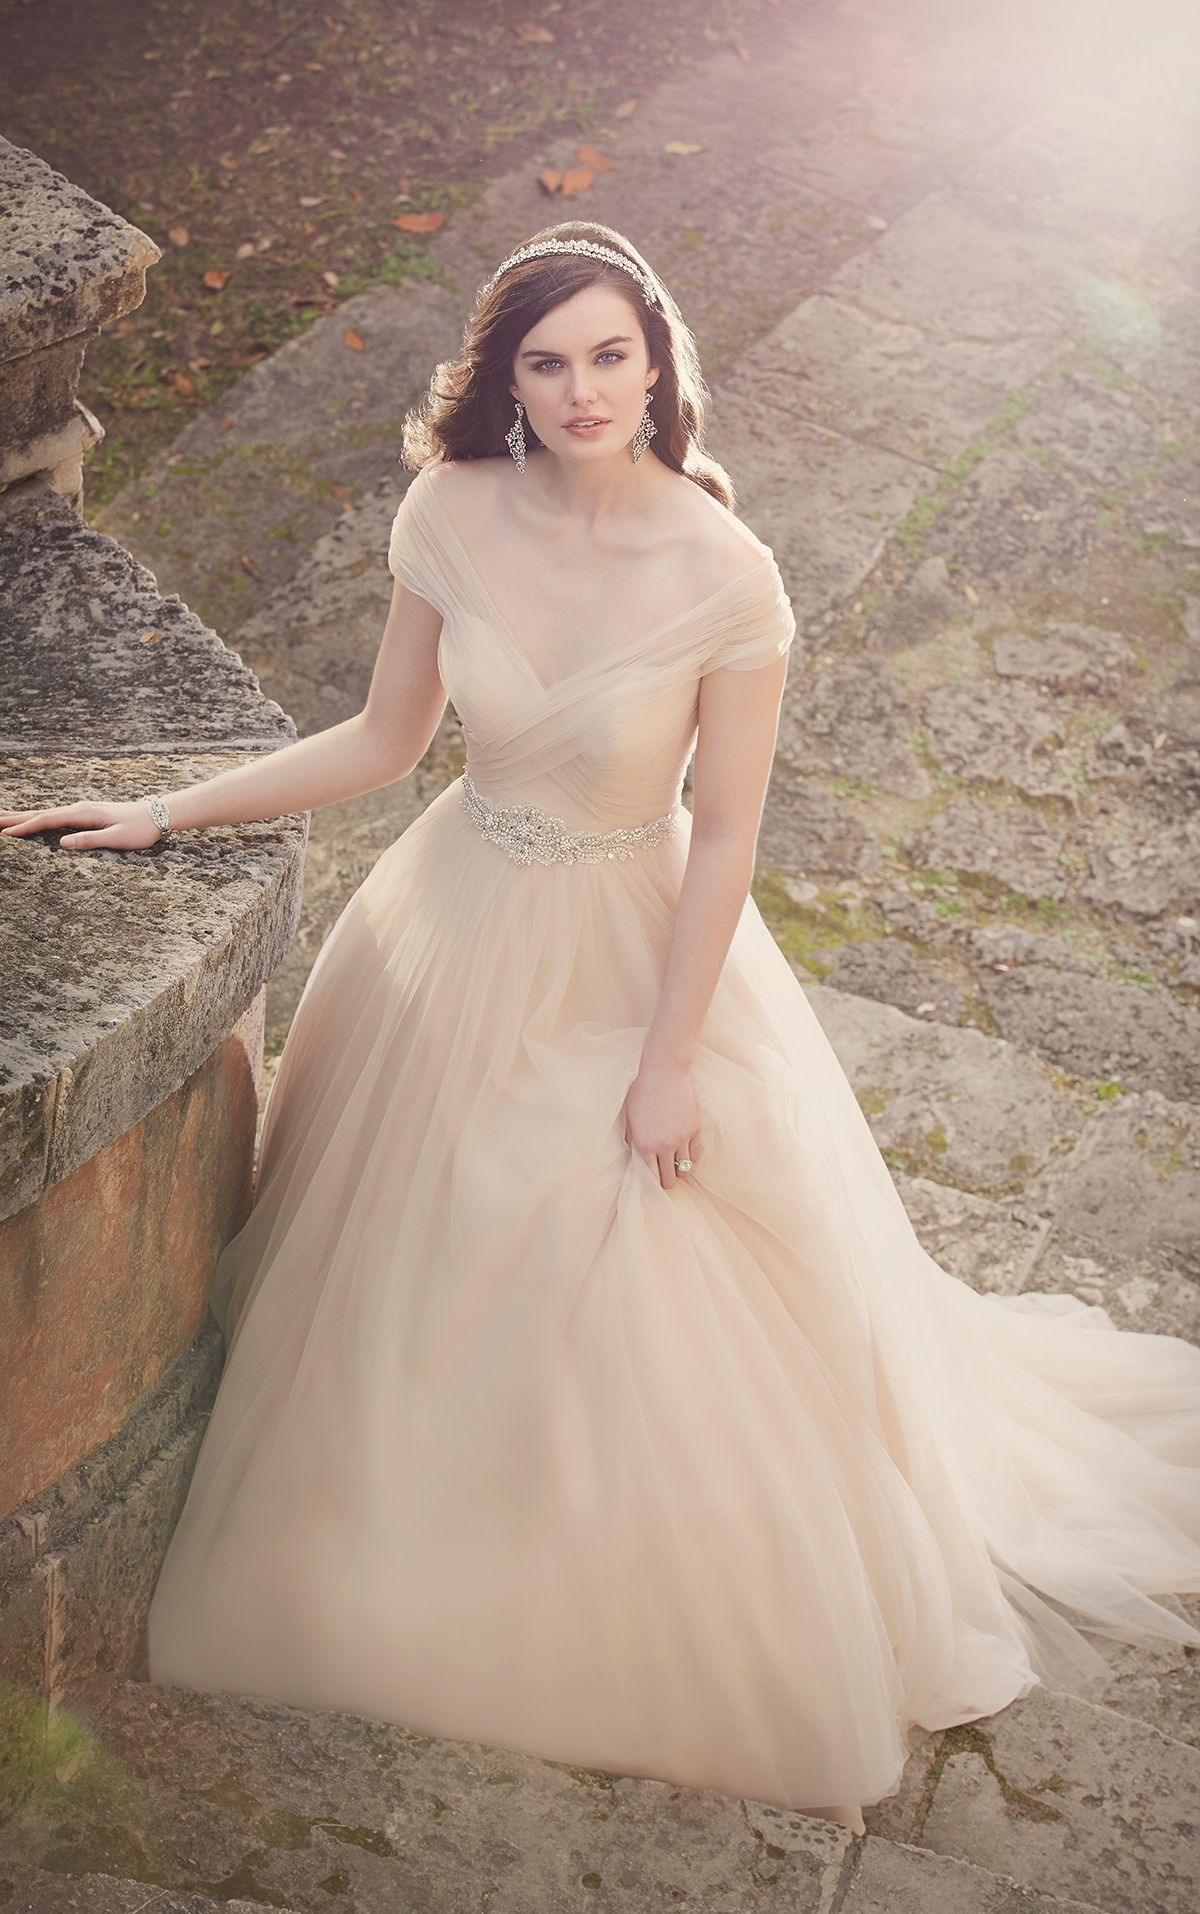 40s wedding dress  Slimming Wedding Dress by  Our Day  The Dress  Pinterest  Boda